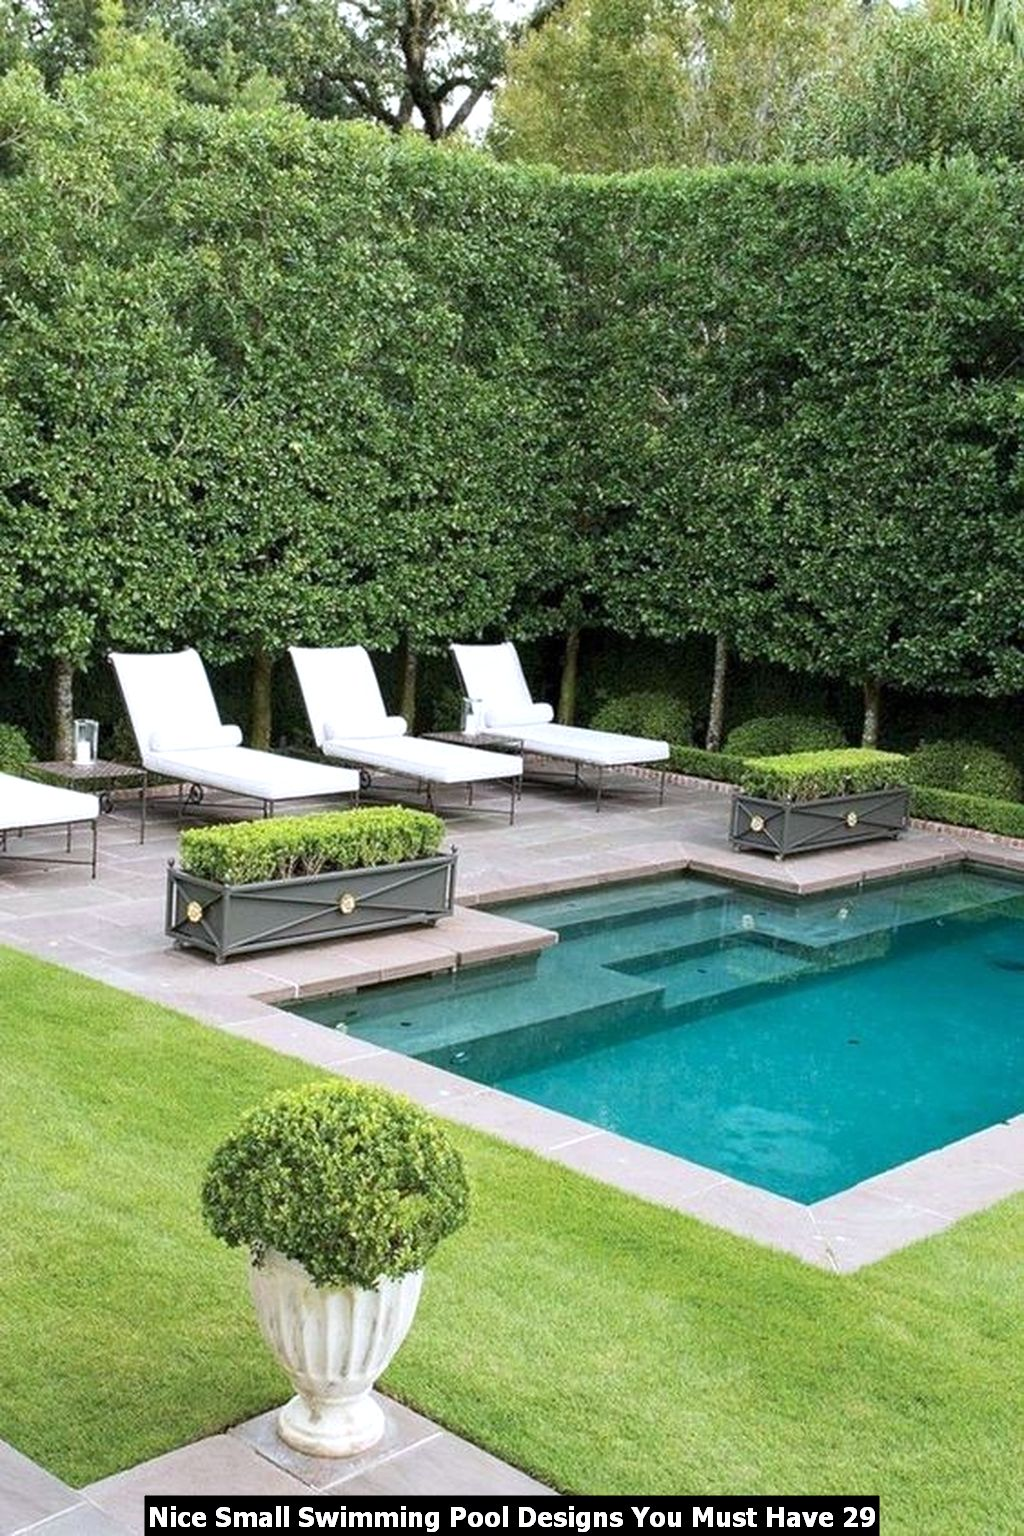 Nice Small Swimming Pool Designs You Must Have 29